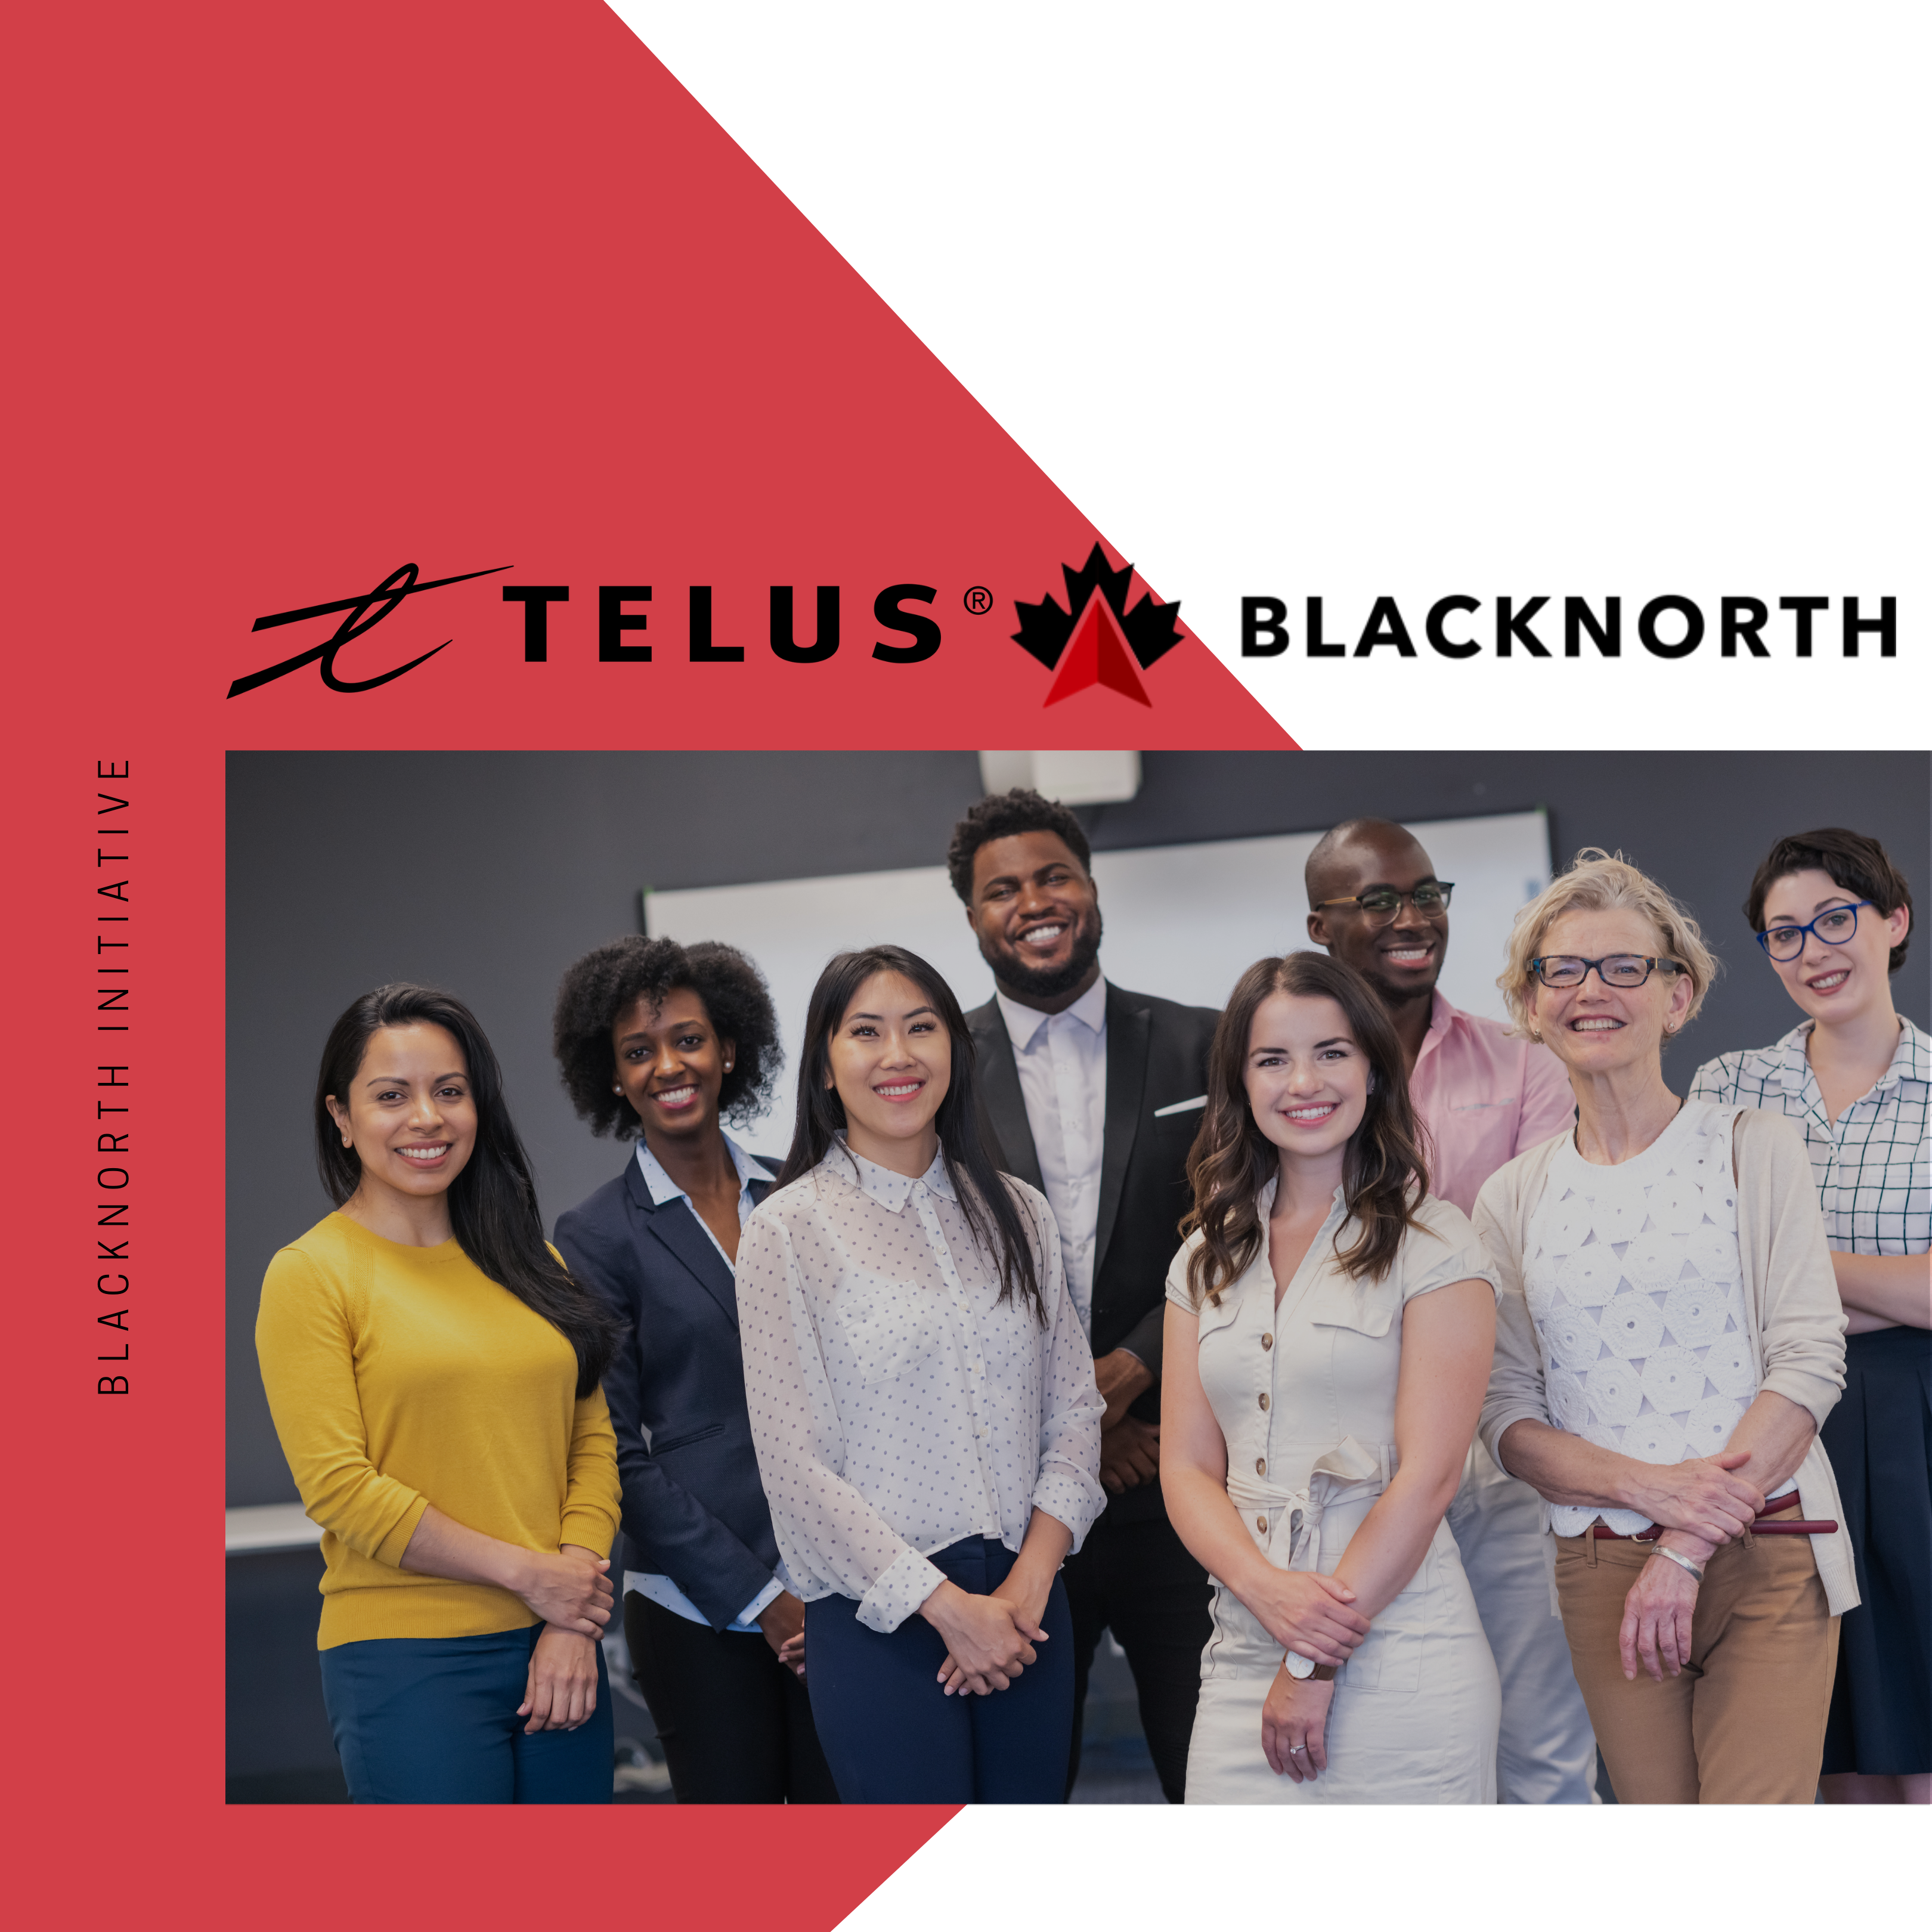 BlackNorth Initiative congratulates TELUS for setting and surpassing ambitious board diversity targets for gender, visible minority and Indigenous representation